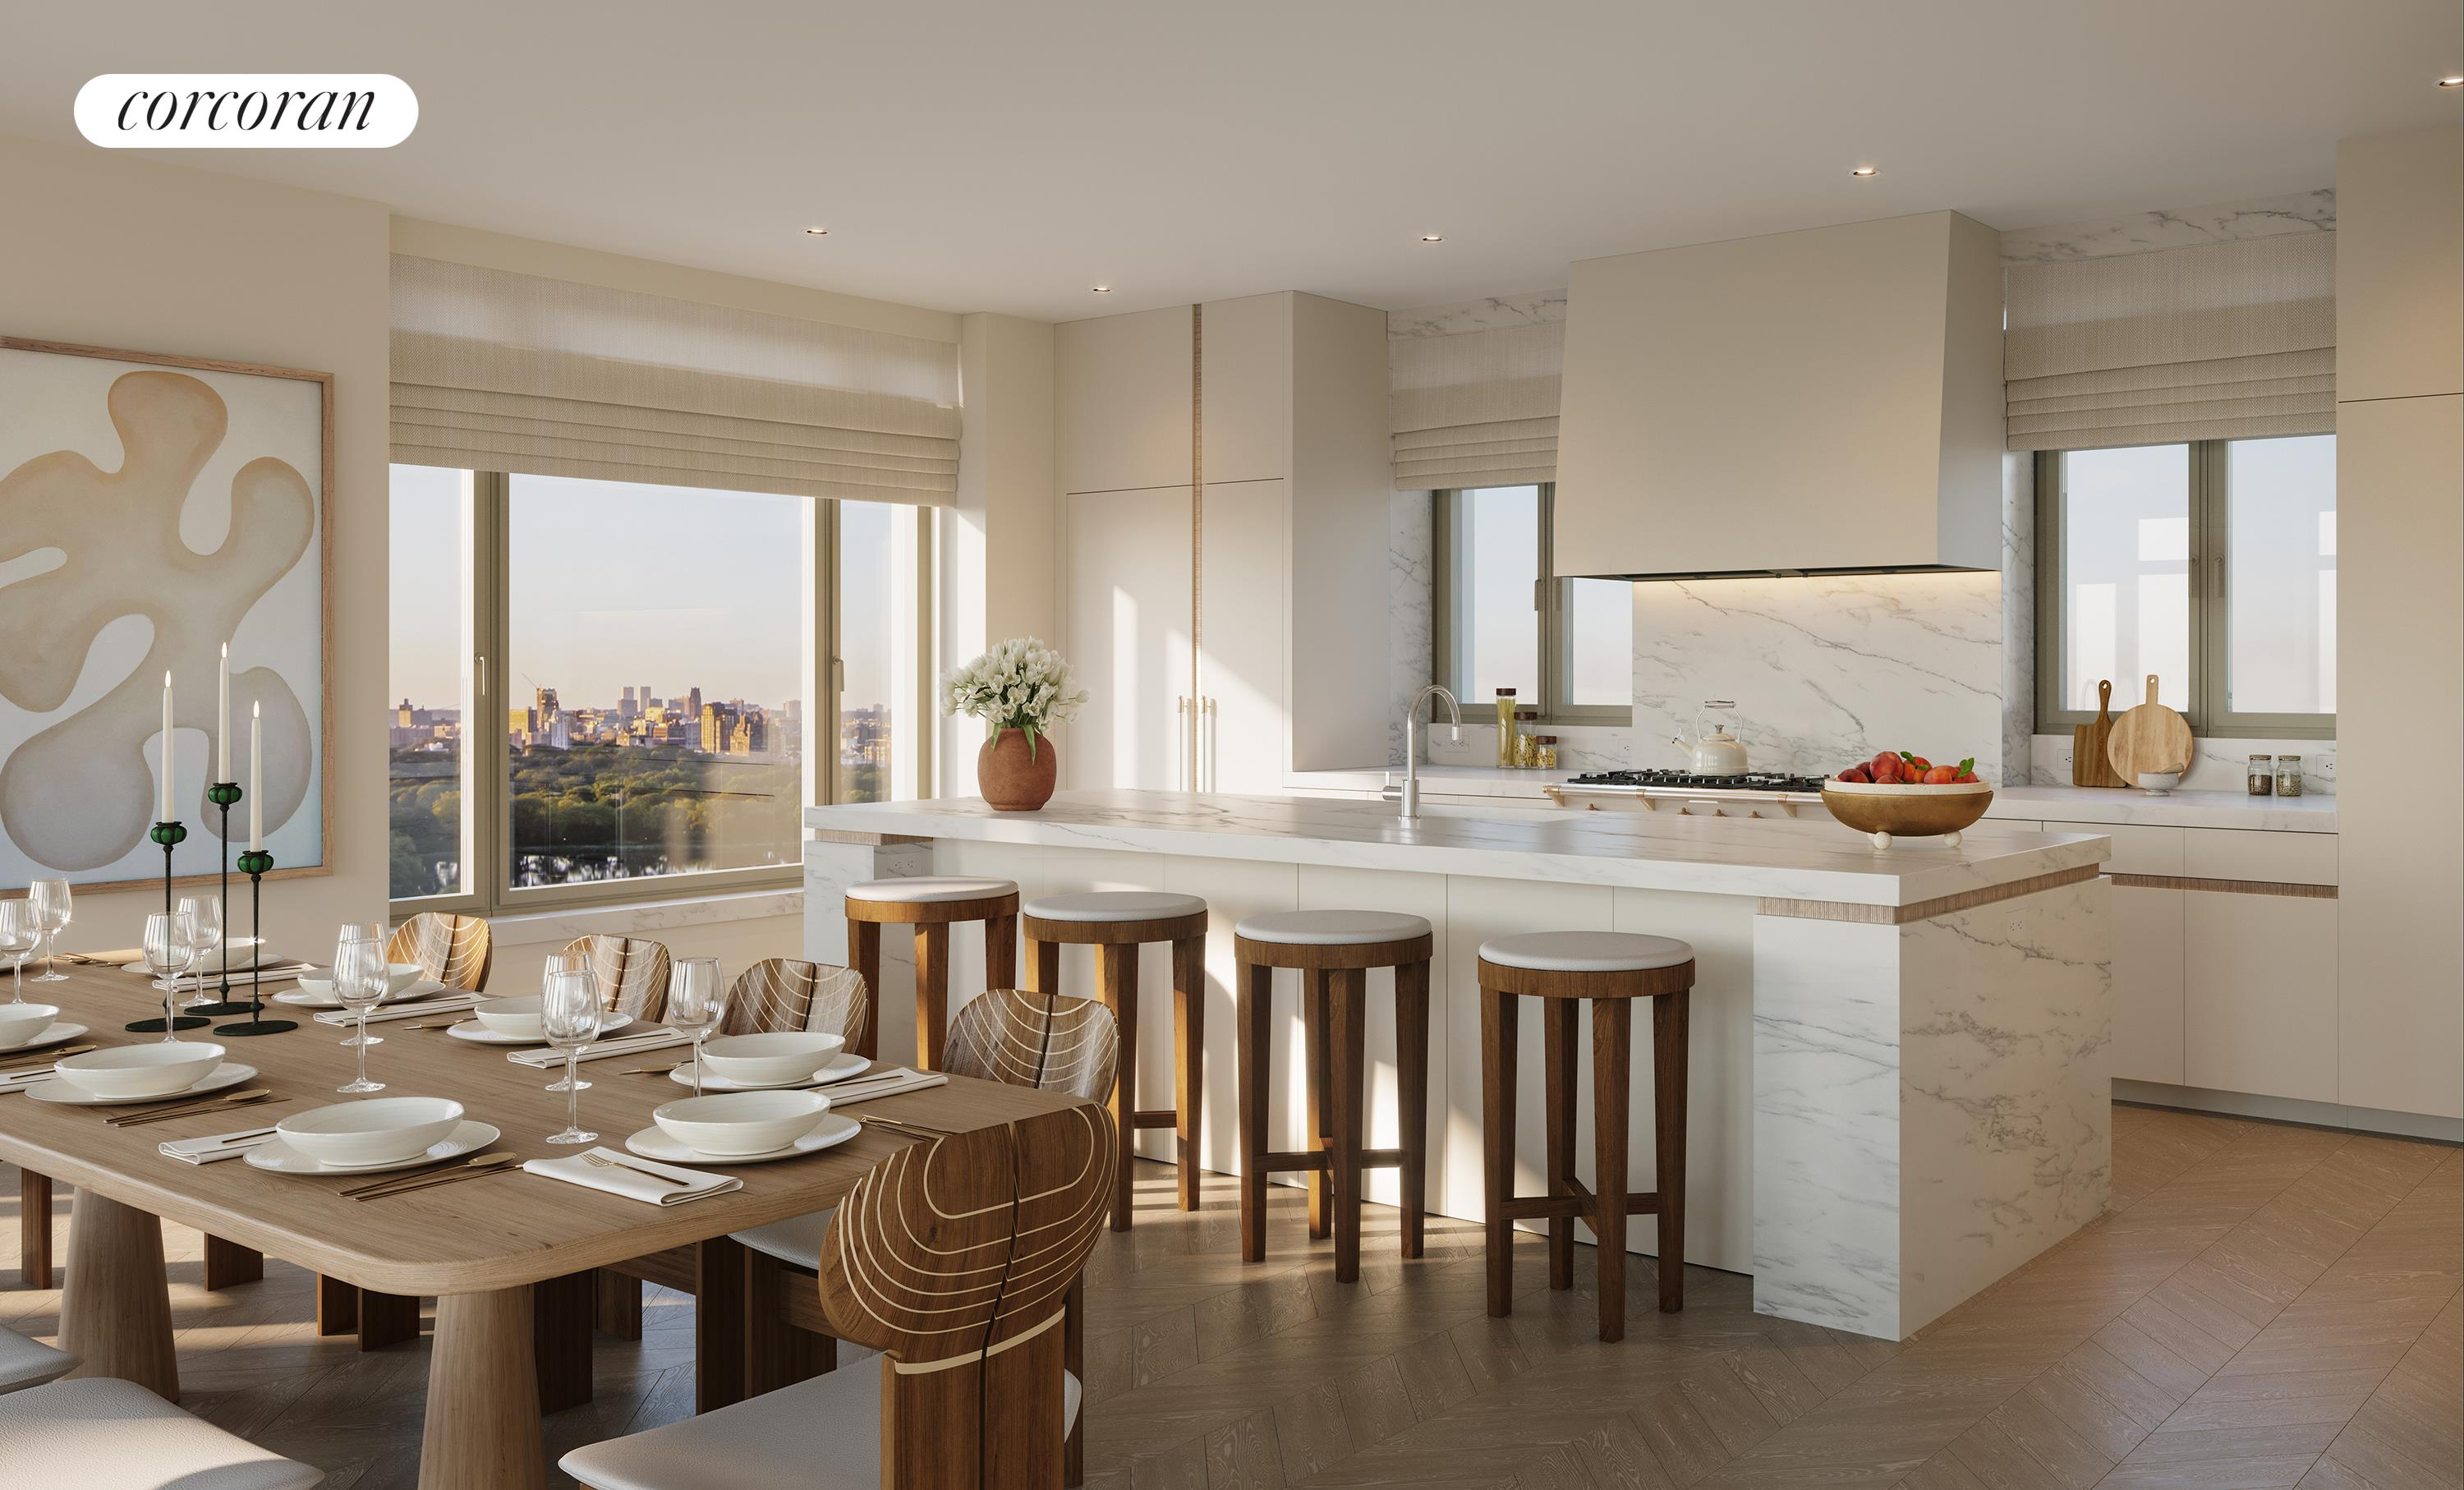 """Co-op with Condominium Rules.Last Home with Central Park Views!4% Commission through November 25, 2021!The Twelfth Floor at 1228 Madison Avenue is a 3 bedroom/3.5 bath full-floor home, spanning 3,476 Sq. Ft. (323 Sq. M.) with north, east, south and west exposures, and views of Central Park and the Jacqueline Kennedy Onassis Reservoir. The elegant elevator vestibule leads to the dramatic 8' white oak entry door, and opens into an entry foyer with custom stained white oak floor in a chevron pattern. The chevron pattern continues through the living spaces of the residence, leading to the gracious corner great room, bathed in natural light from oversized windows that look out onto Central Park. The sunny eat-in kitchen features white matte lacquer Molteni cabinetry with white oak tambour detail, and honed Calacatta Estremoz slab countertops, backsplash and island with seating for four, as well as a full-height pantry. The kitchen is fully-equipped with a Lacanche 7-burner range, a suite of Wolf, Miele and Sub-Zero appliances, and a wine refrigerator.Beyond the living spaces, 7"""" white oak plank flooring runs throughout the bedroom wing. The spacious master bedroom suite features two oversized closets and north, east, and south exposures, offering abundant light and open views up and down Madison Avenue. The windowed 5-fixture master bath features a freestanding tub and is luxuriously finished with Bianco Oro marble slab walls with matching marble floor tiles and radiant heat, millwork vanity with limed oak finish, custom-designed medicine cabinet and wall sconces by Kelly Behun Studio, and burnished nickel fixtures by Waterworks throughout.The secondary bedrooms feature oversized closets and en-suite baths with the elegant combination of honed Calacatta marble floor tile with radiant heat, white matte lacquer vanities with custom medicine cabinet above, polished nickel fixtures by Waterworks, and either a stall shower clad in honed Calacatta marble wall tile or a soaking"""